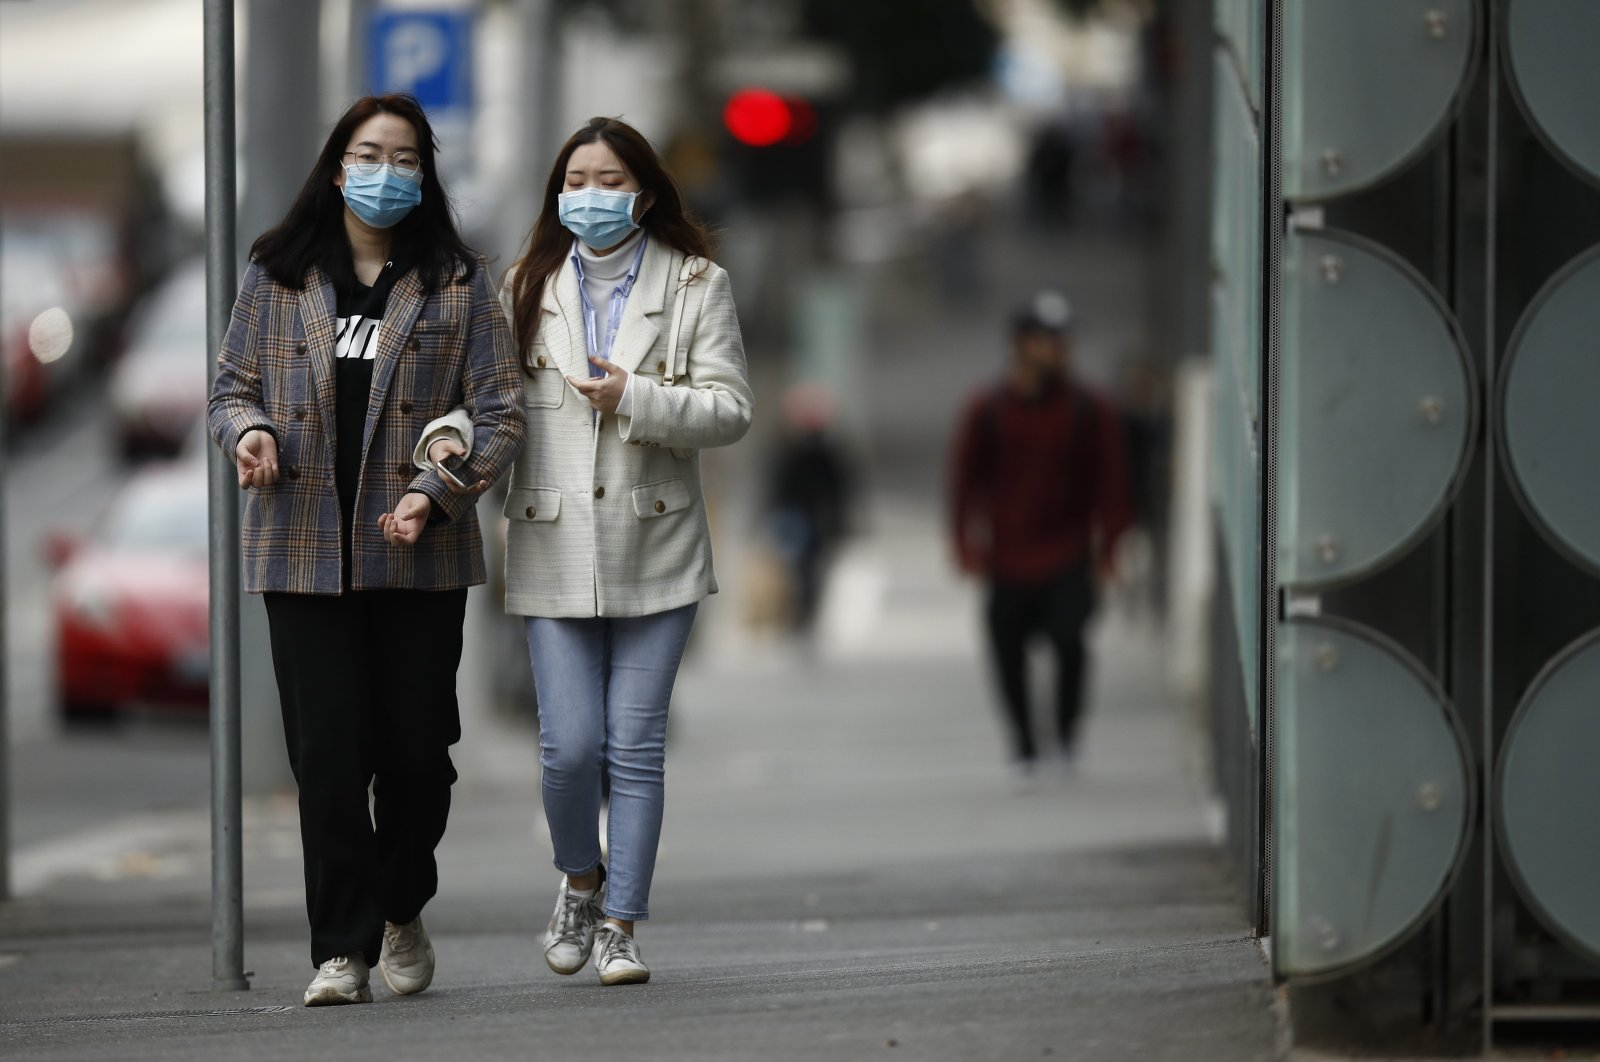 Women wearing masks walk around Melbourne, Australia, June 25, 2020. (EPA Photo)